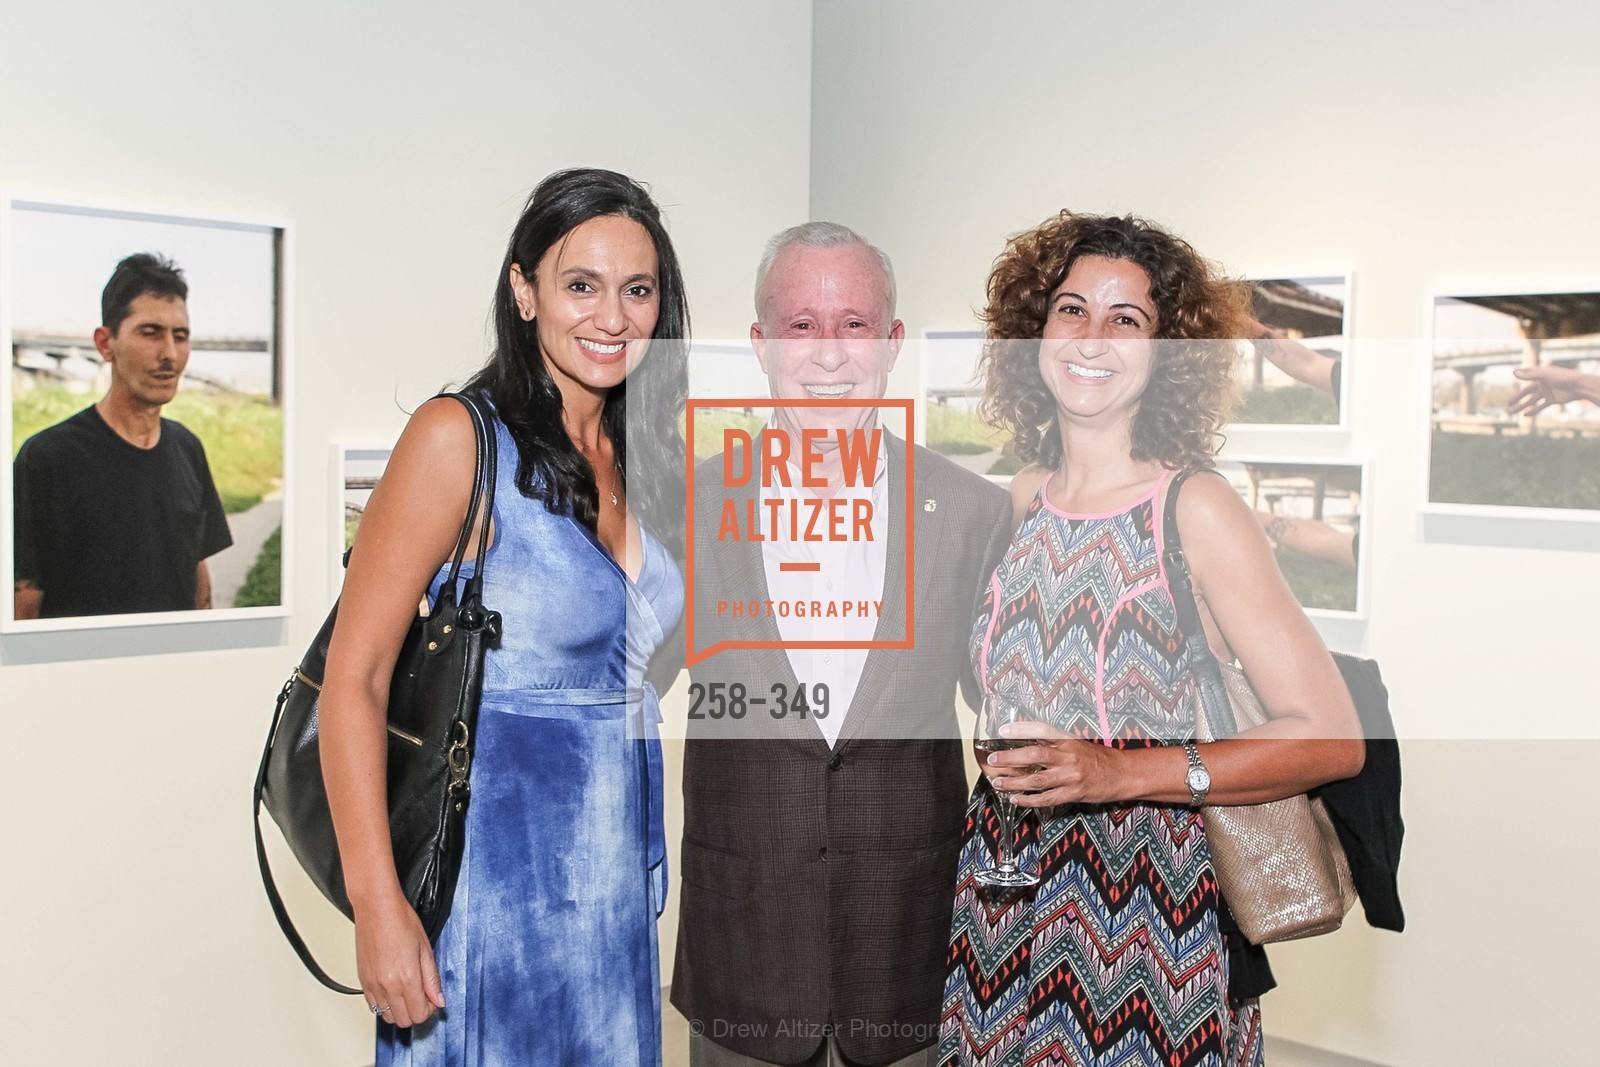 Heba Desouky, Stephen Doyle, Miriam White, Cocktails on the Pier- A BASIC Fund Thank You, Pier 24 Photography. 24 Pier The Embarcadero, October 8th, 2015,Drew Altizer, Drew Altizer Photography, full-service event agency, private events, San Francisco photographer, photographer California